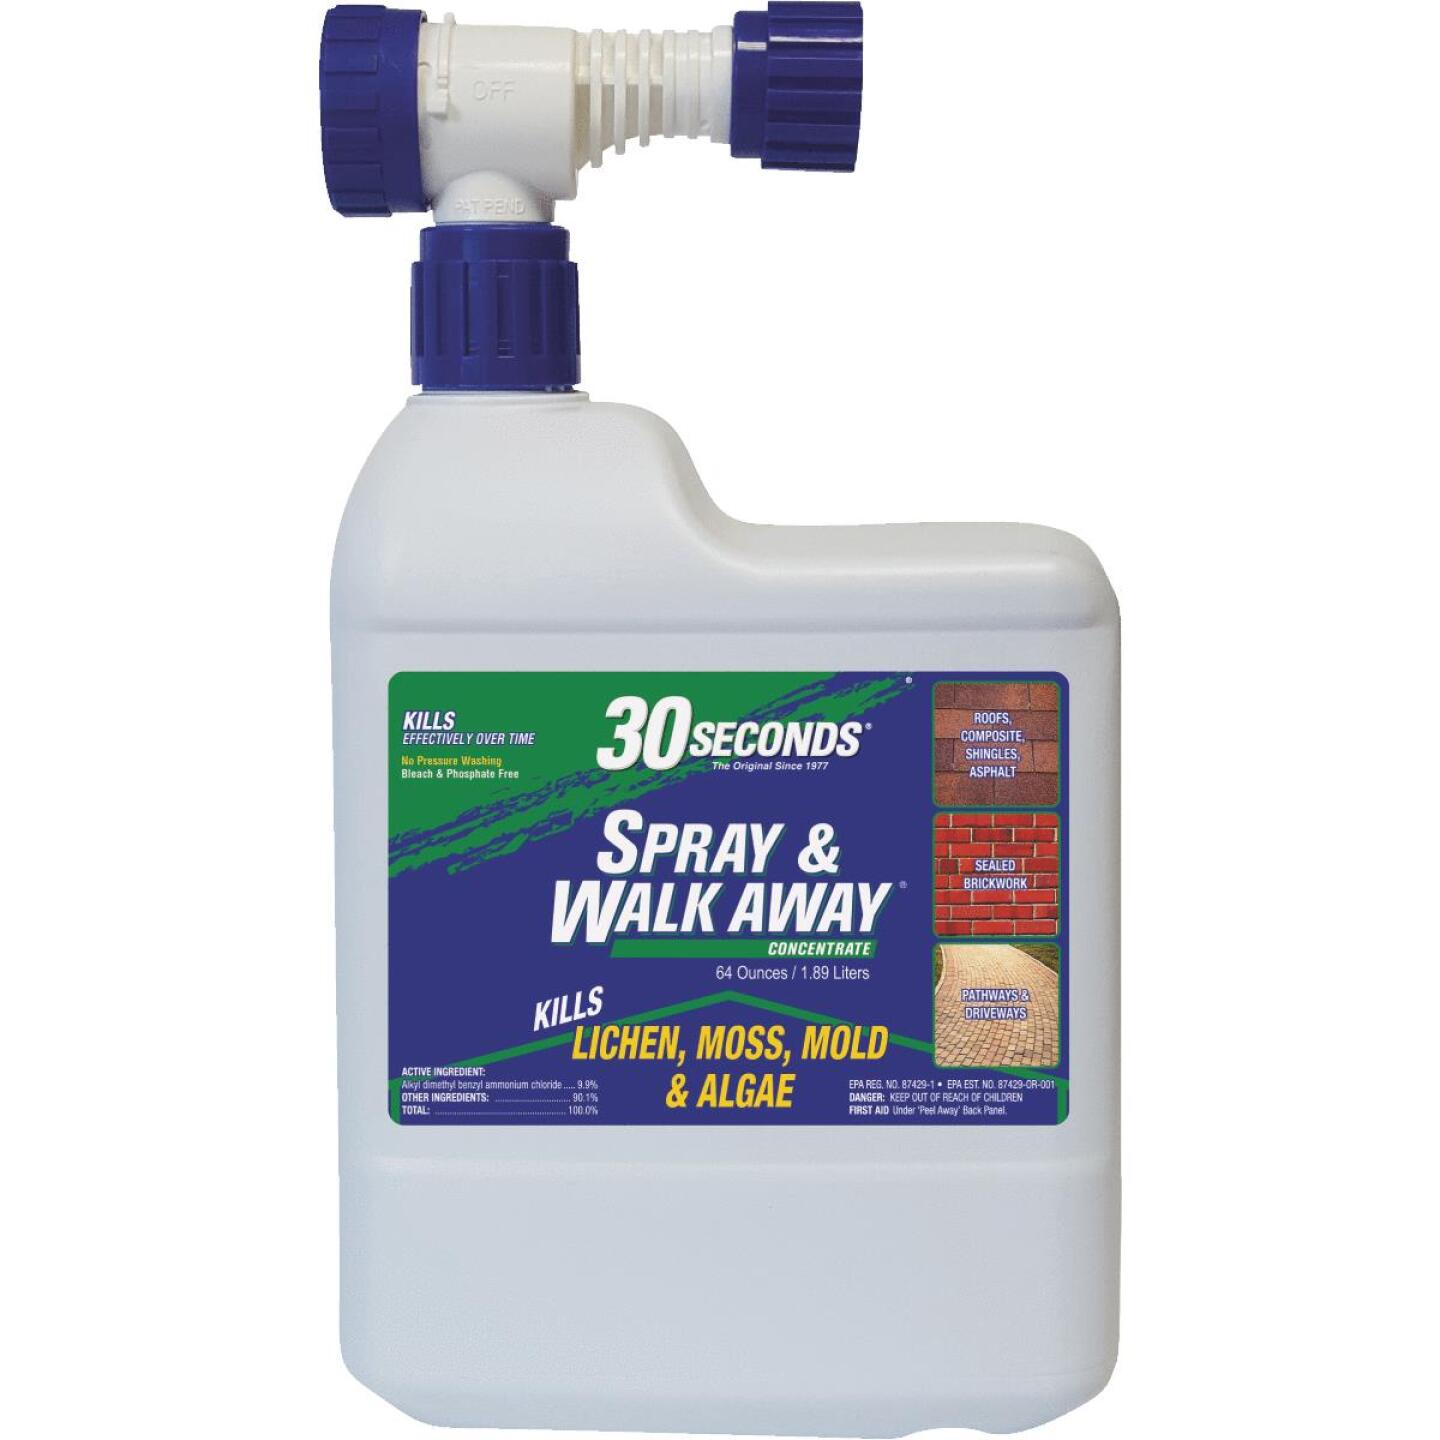 30 seconds Spray & Walk Away 64 Oz. Ready To Spray Moss & Algae Killer Image 1